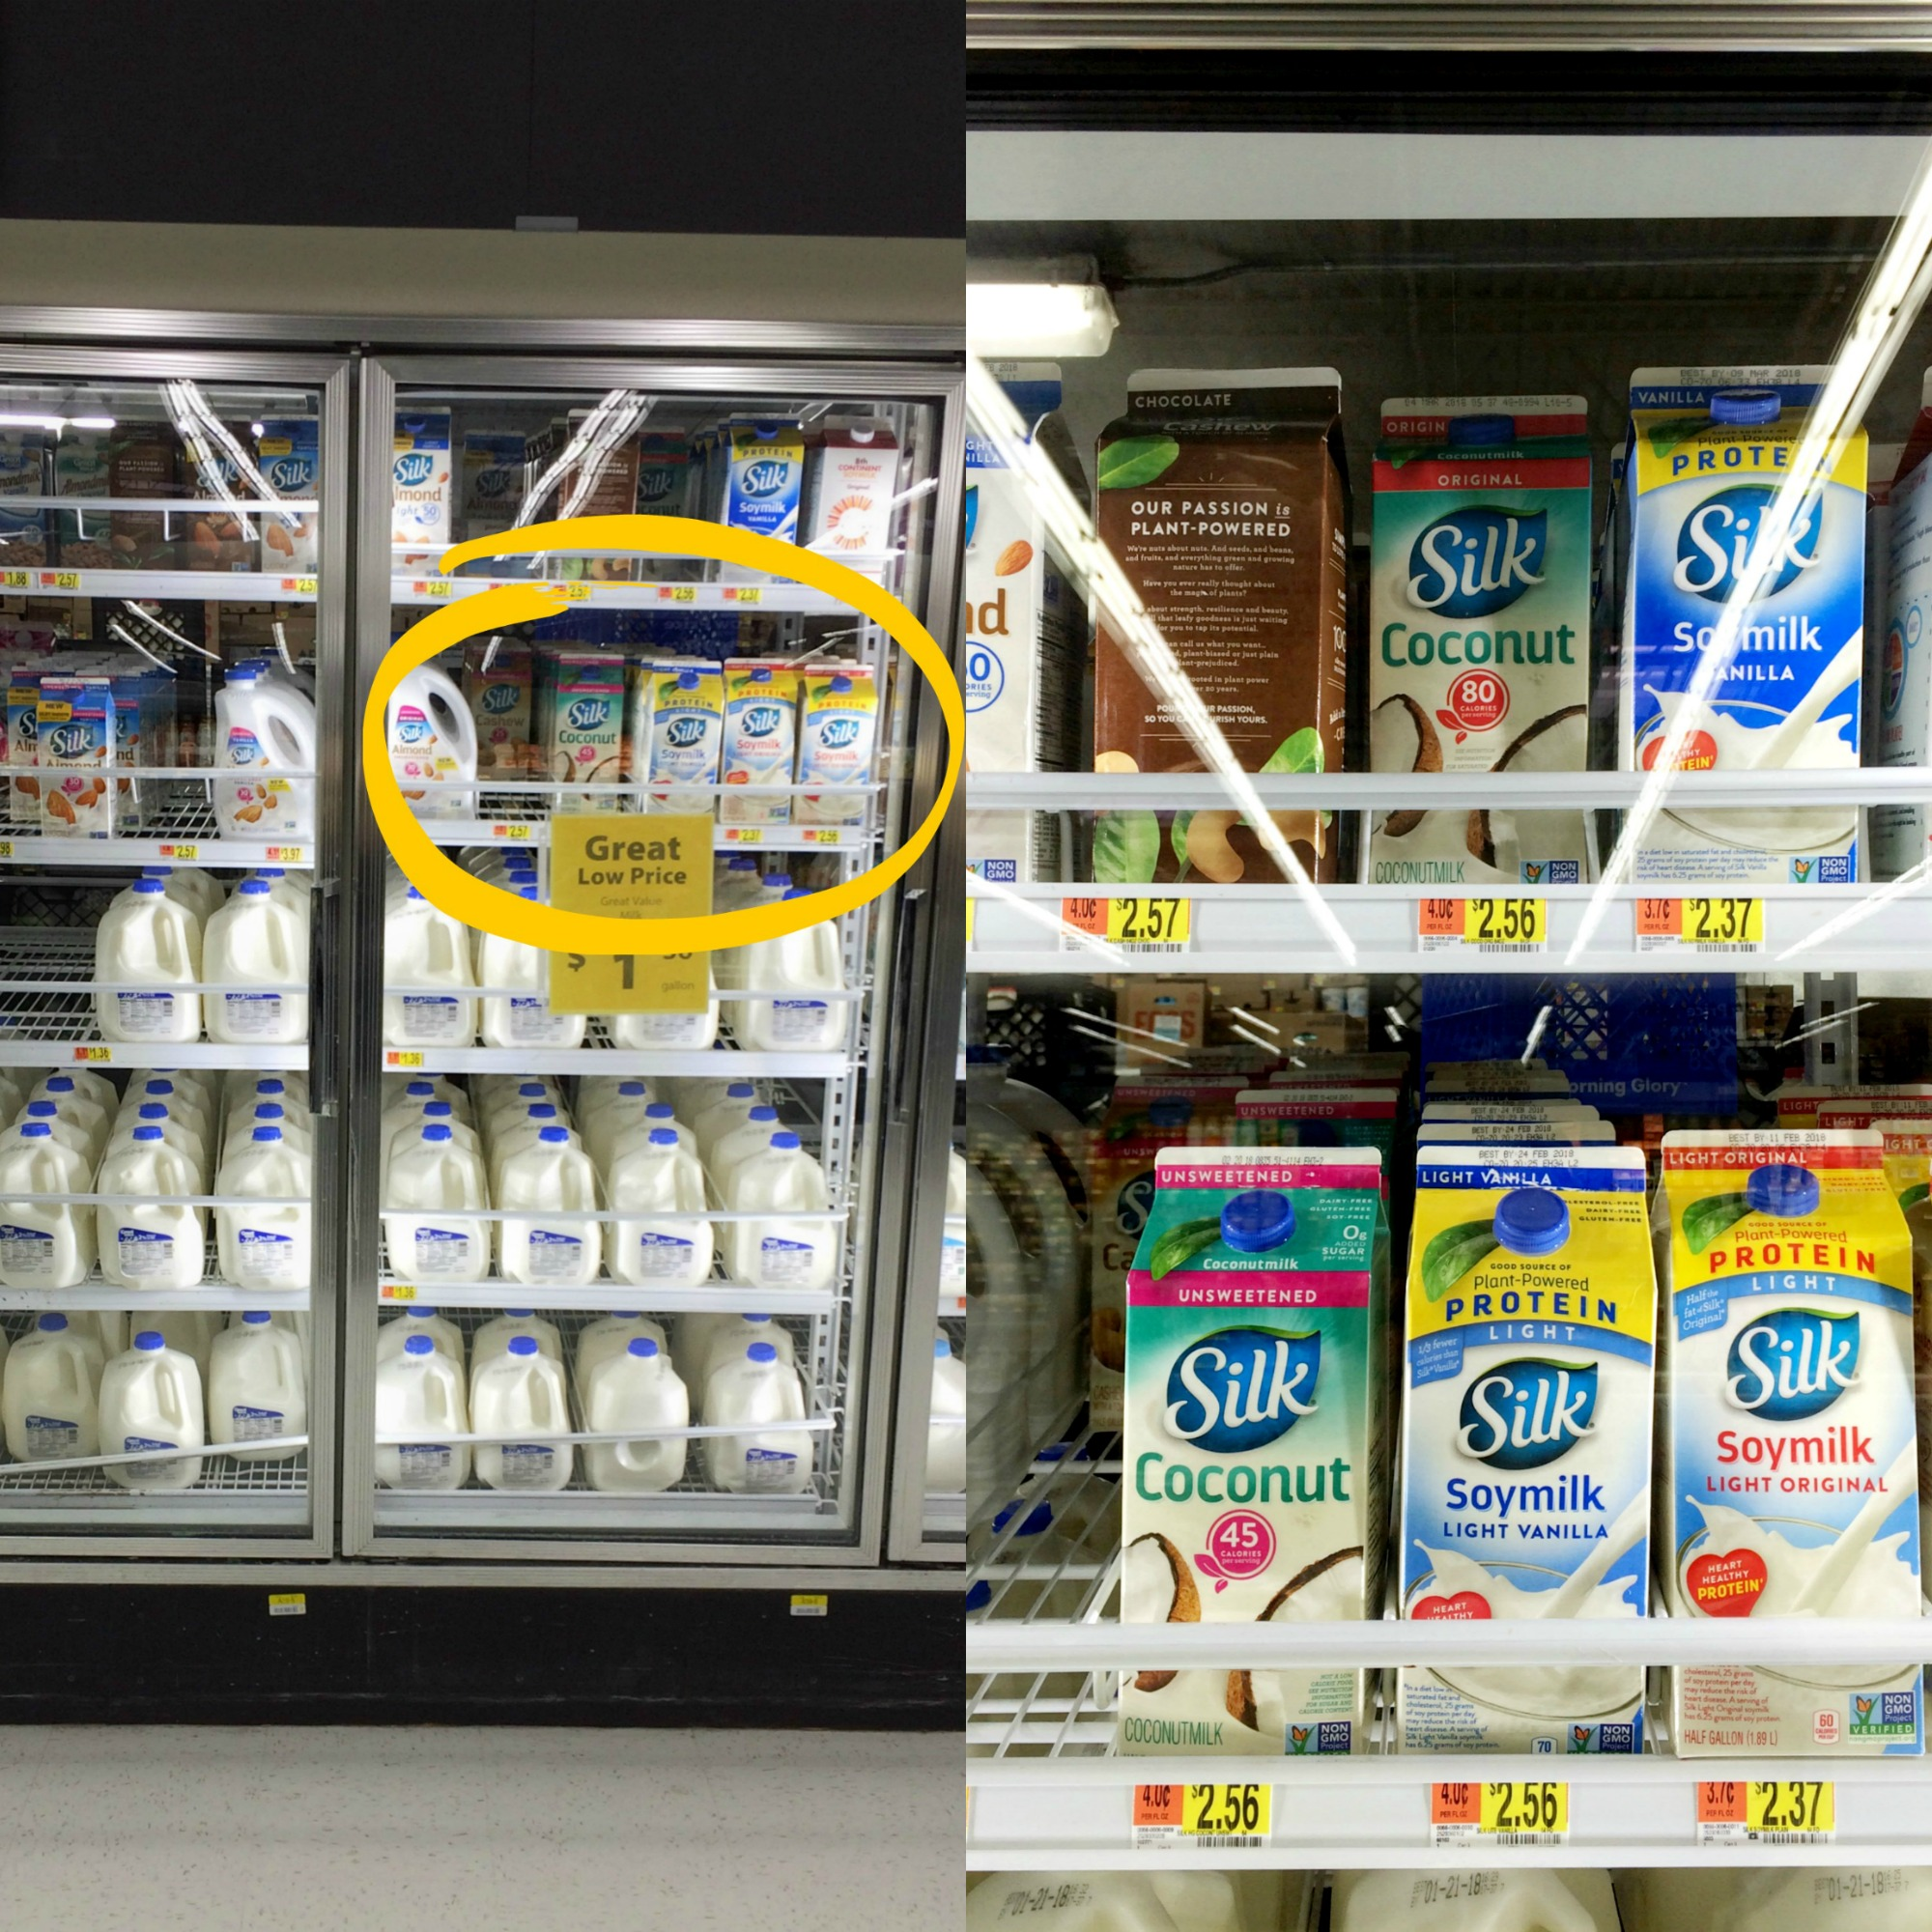 Silk milk half gallons at Walmart